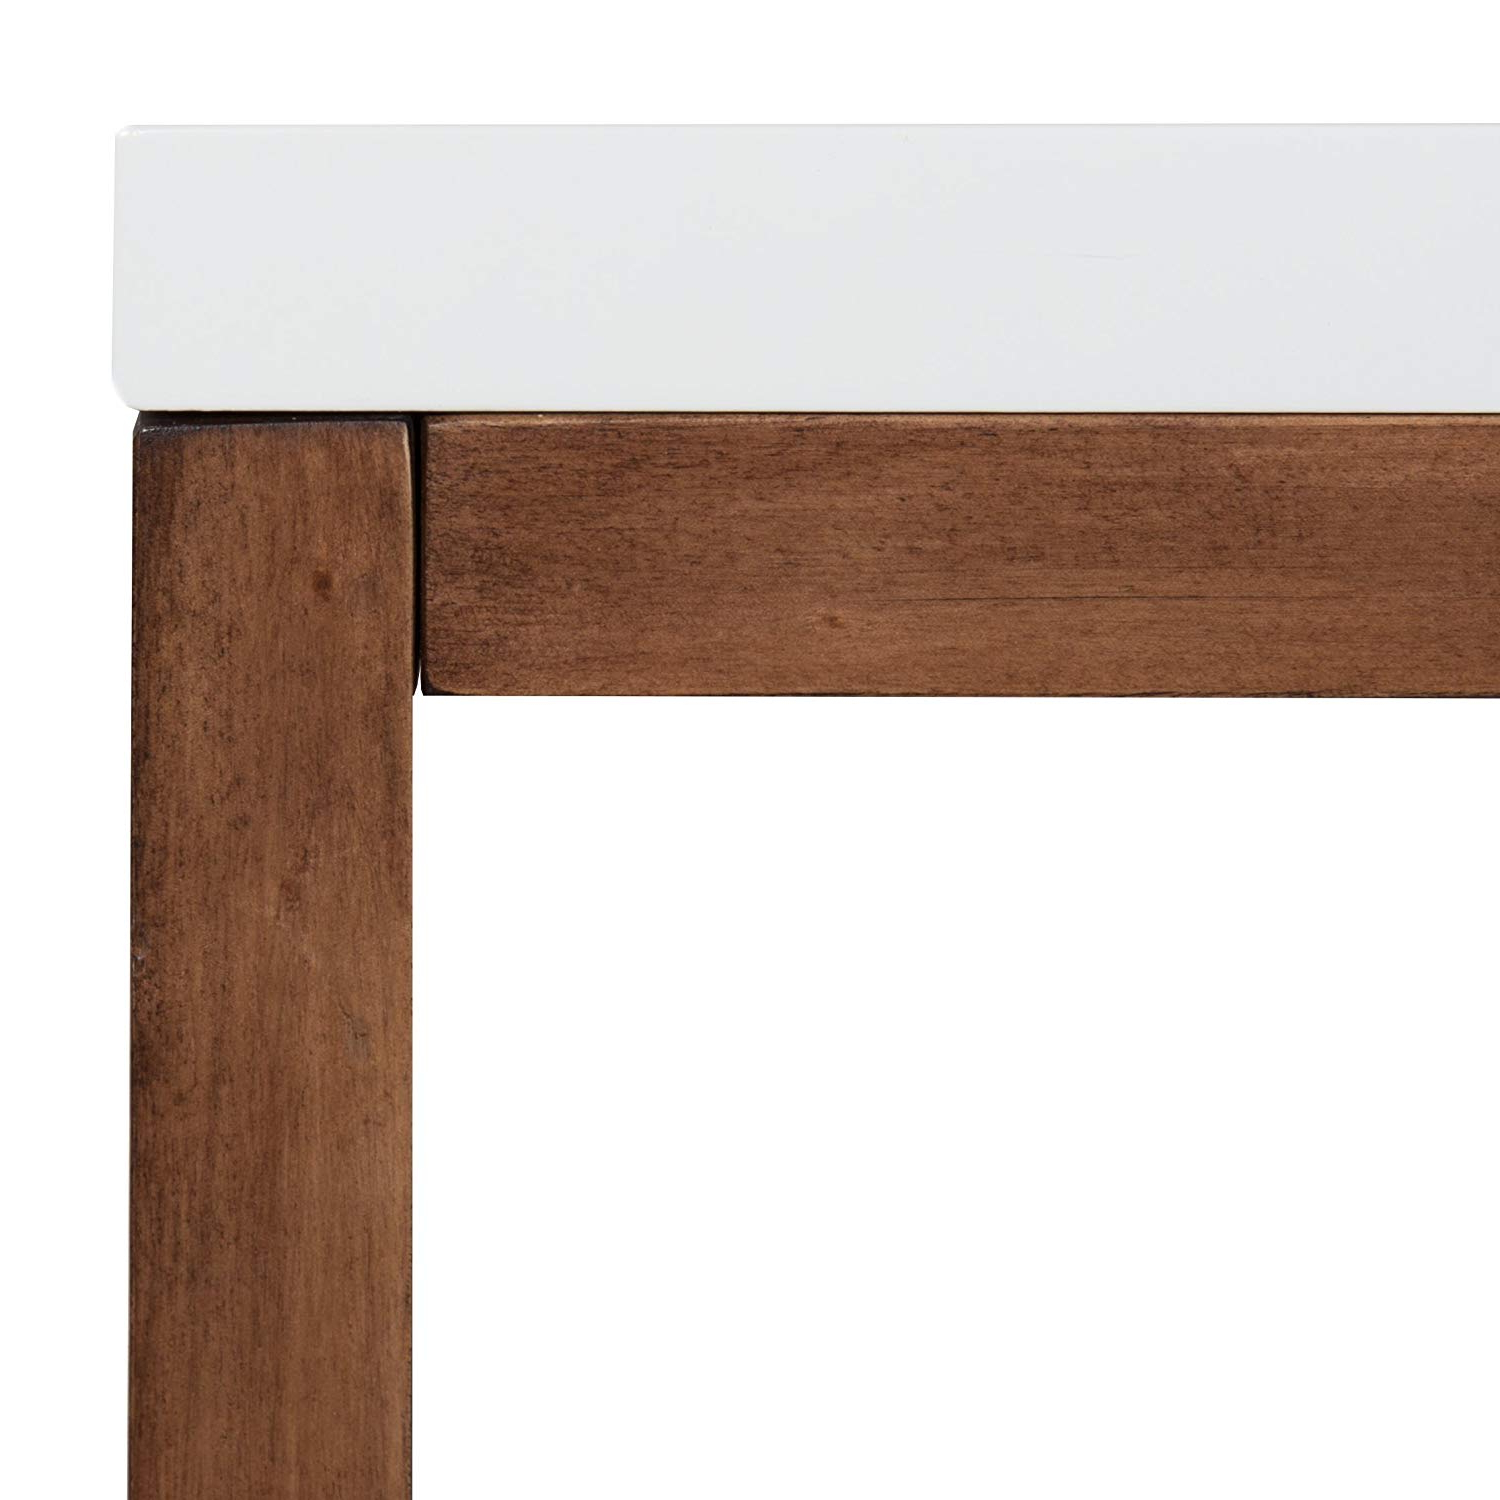 Preferred Amazon: Kate And Laurel Kaya 36 Inch Tall Pub/bar Table, Two Pertaining To Kaya 3 Piece Dining Sets (View 22 of 25)